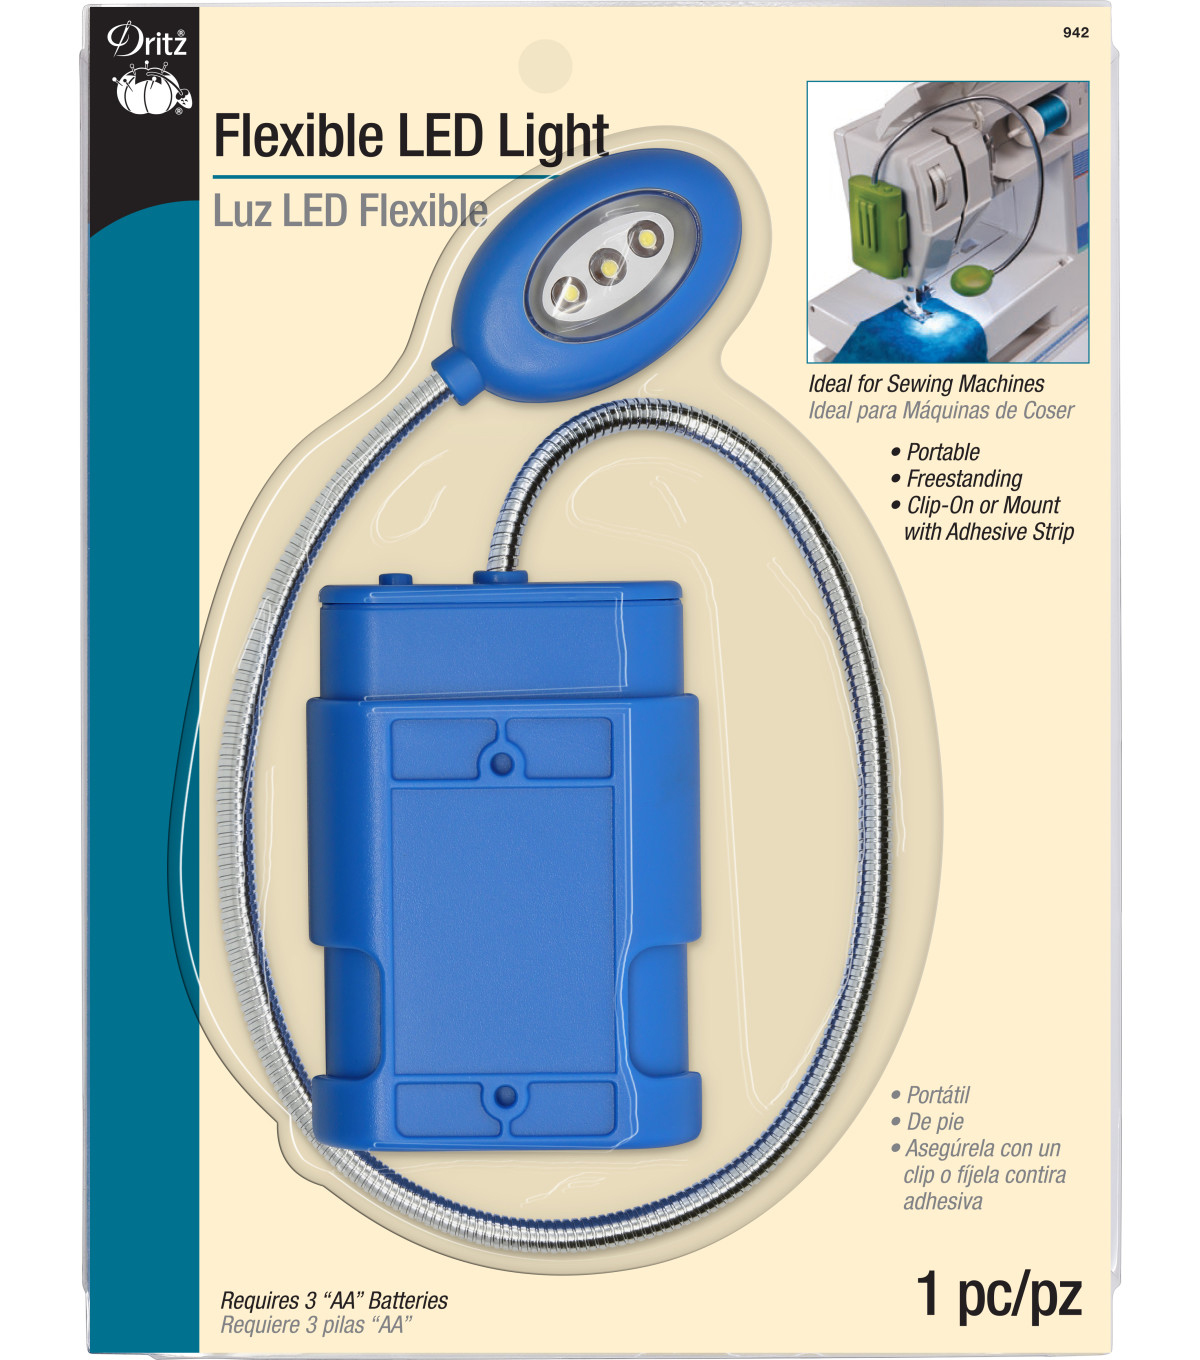 Dritz Flexible LED Light-Assorted Colors-Teal, Raspberry, Purple